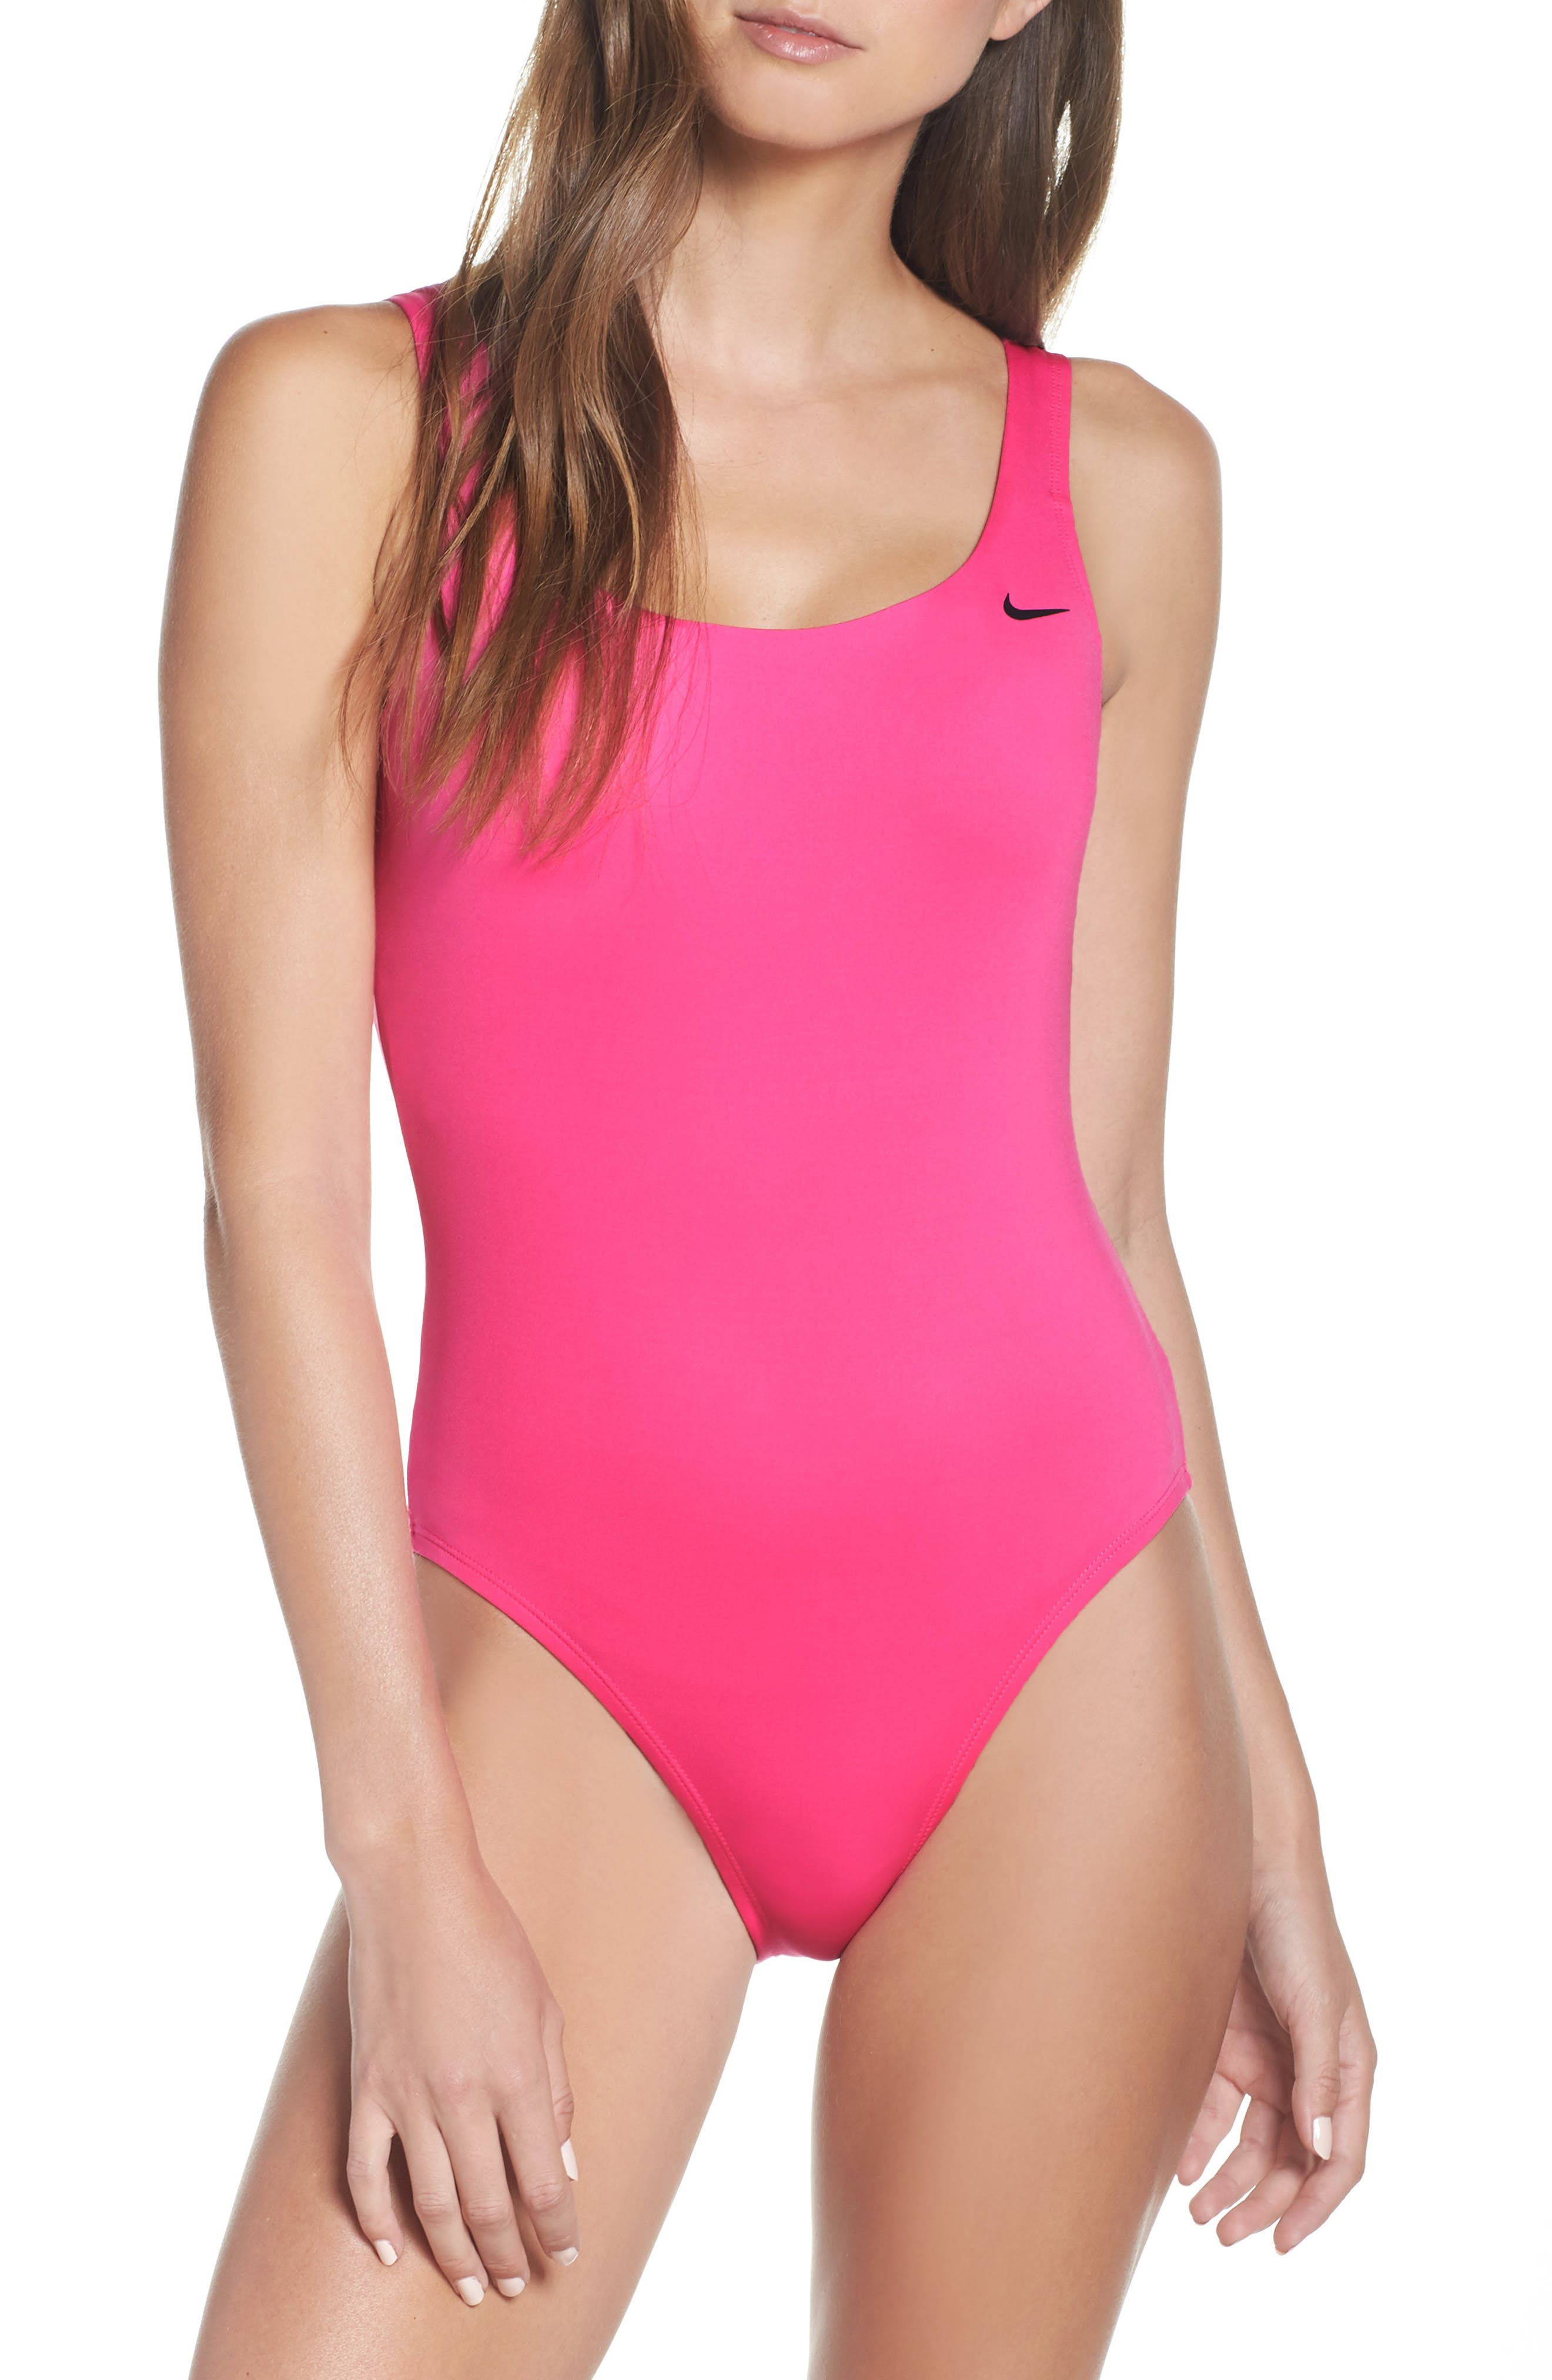 Nike U-Back One-Piece Swimsuit, Pink